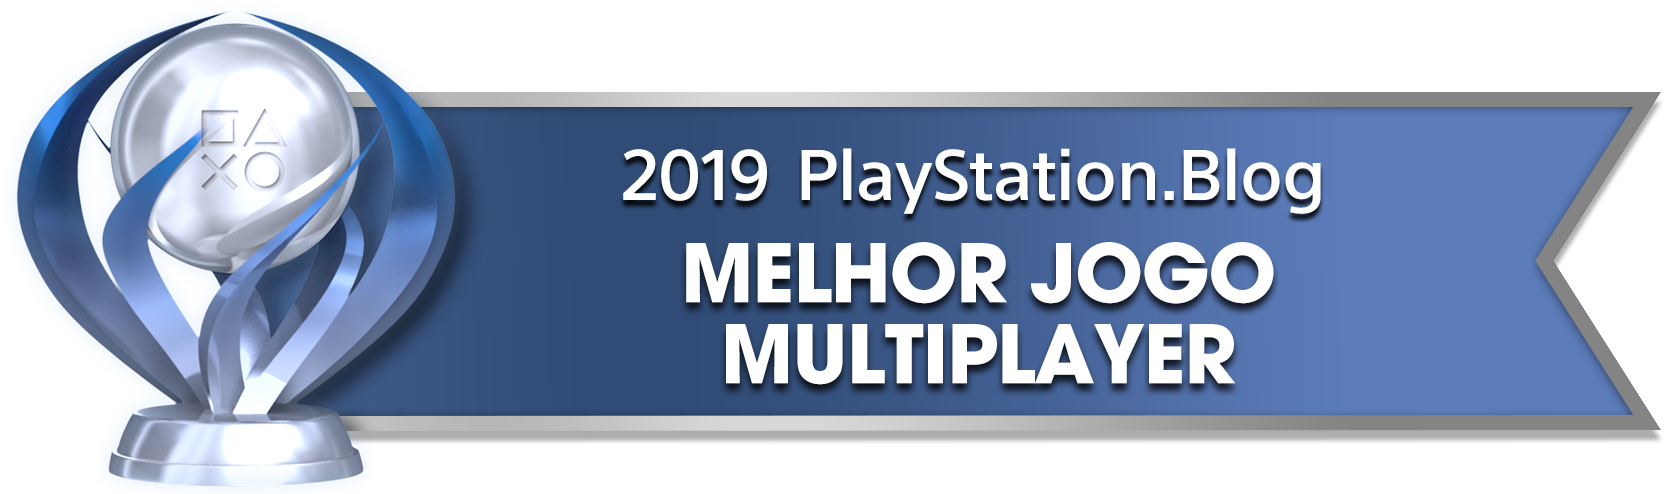 PS Blog Game of the Year 2019 - Best Multiplayer - 1 - Platinum